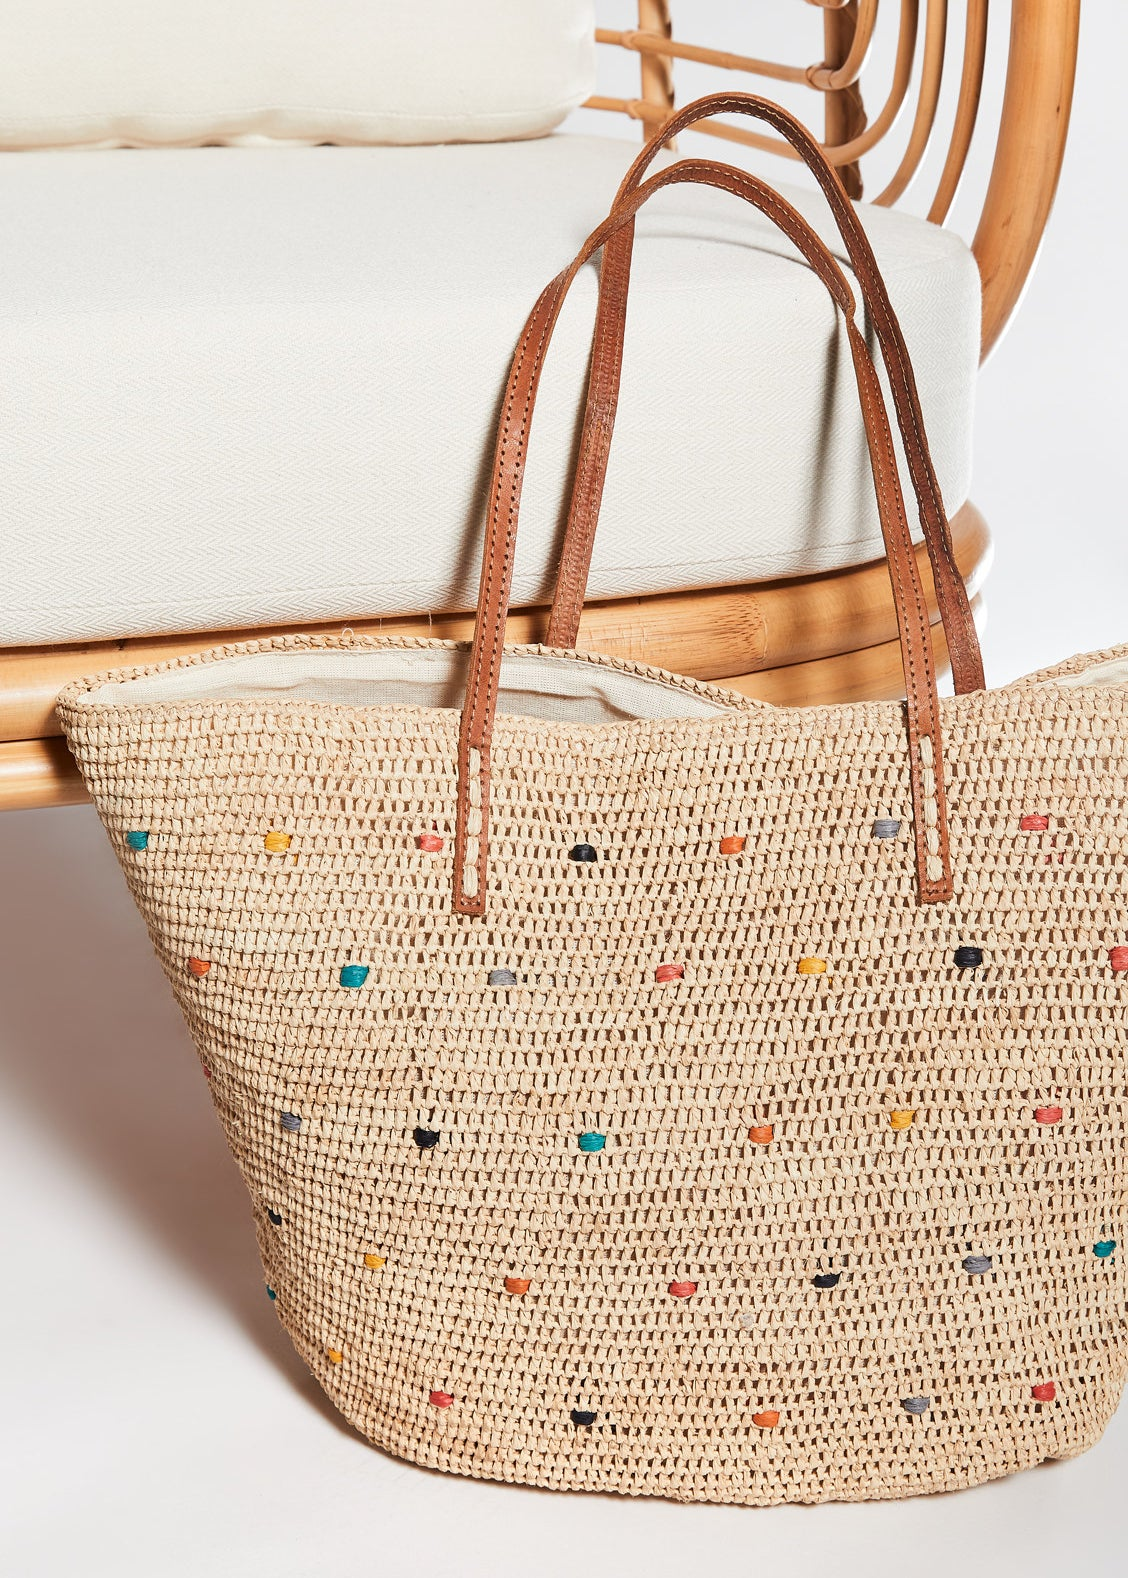 the woven bag with a rainbow of colors stitch throughout the natural colored material